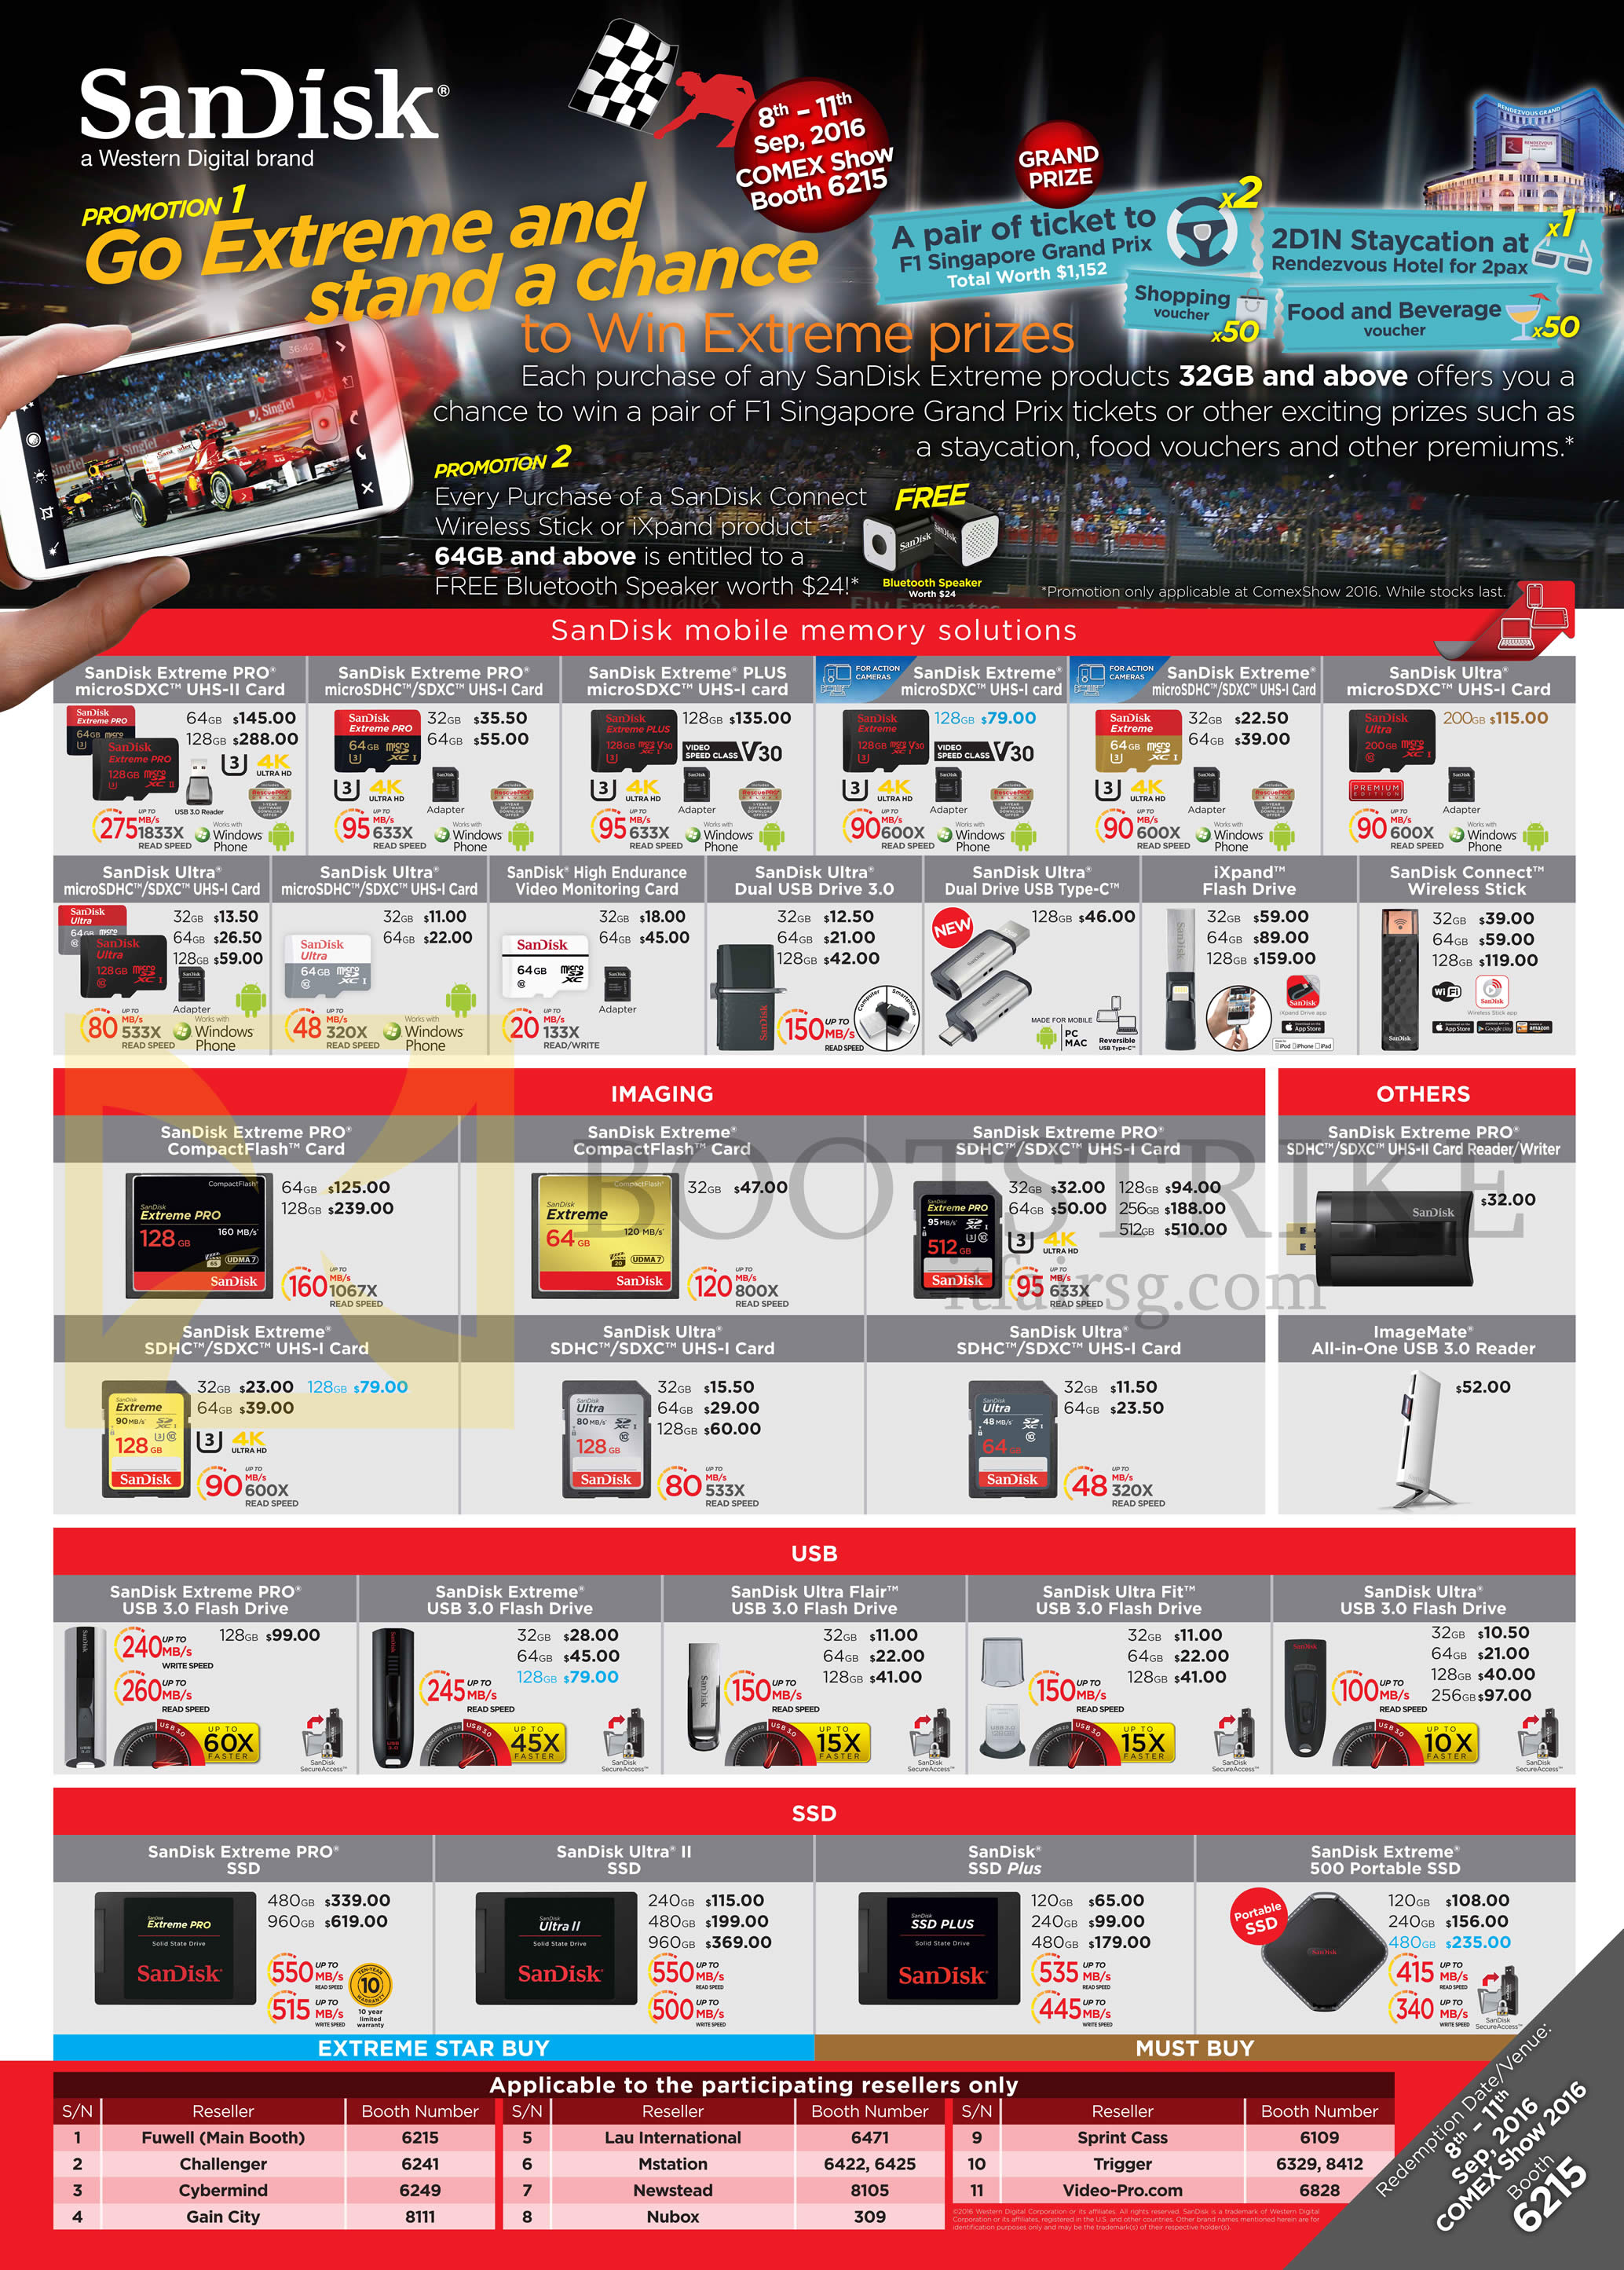 COMEX 2016 price list image brochure of Sandisk Memory Cards, USBs, SSDs, ExtremePRO, Plus, Ultra, Connect, IXpand, ImageMate, Sandisk Ultra Flair, Fit, Ultra II, SSD Plus, 500 Portable SSD